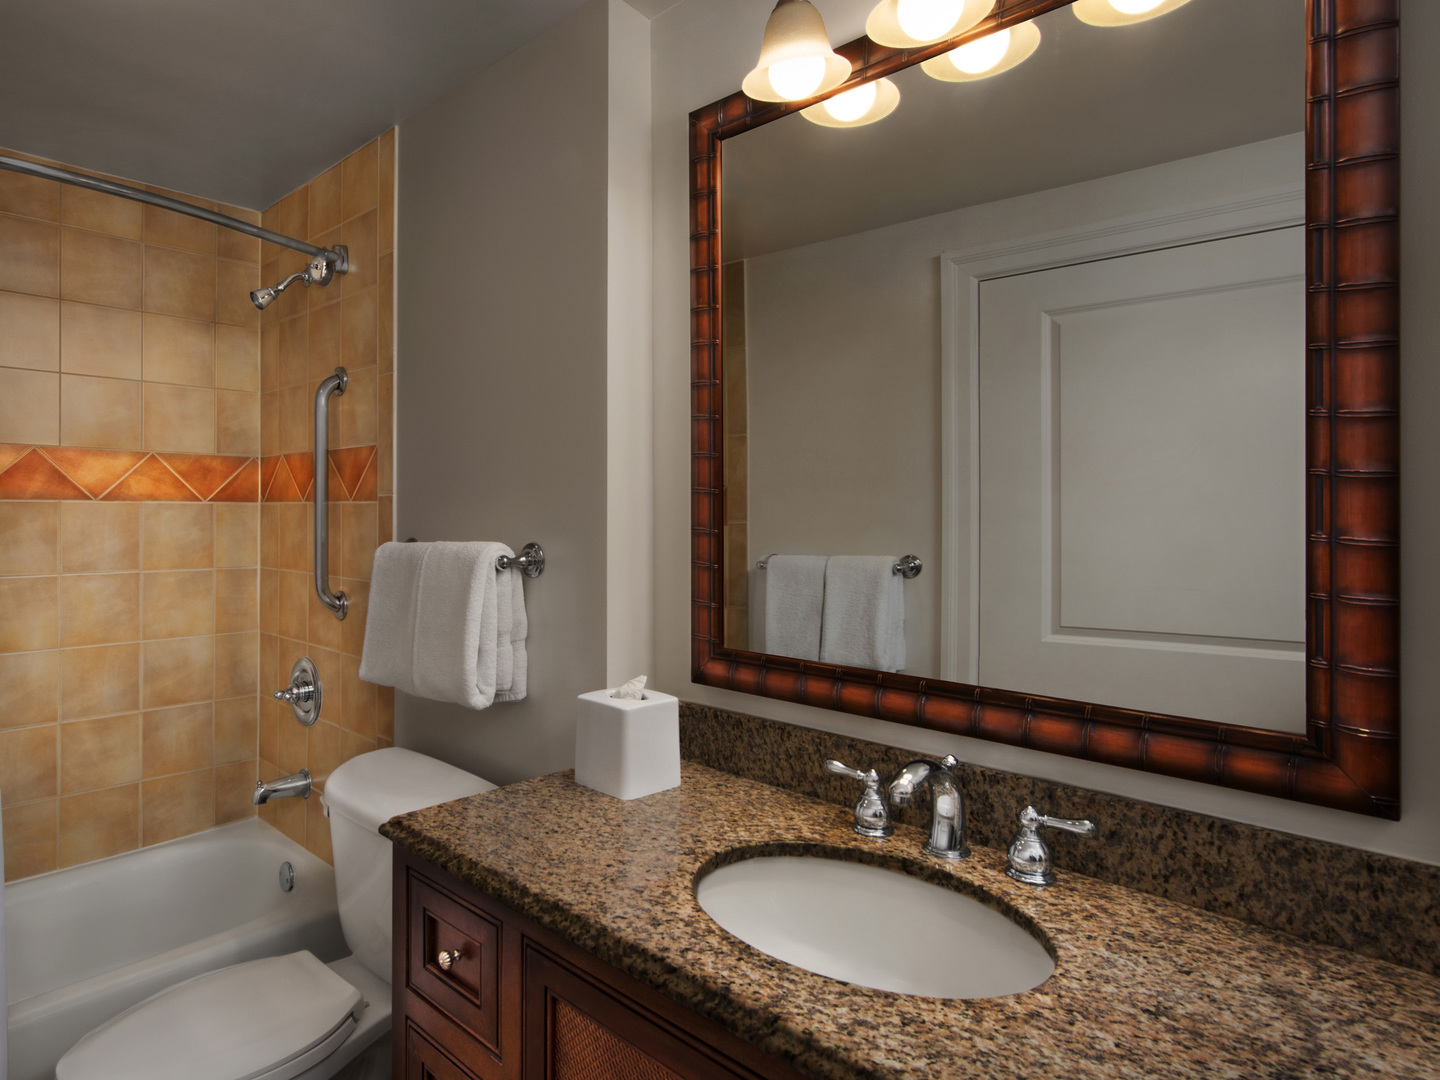 Marriott's SurfWatch<span class='trademark'>®</span> Villa 2nd Bathroom. Marriott's SurfWatch<span class='trademark'>®</span> is located in Hilton Head Island, South Carolina United States.